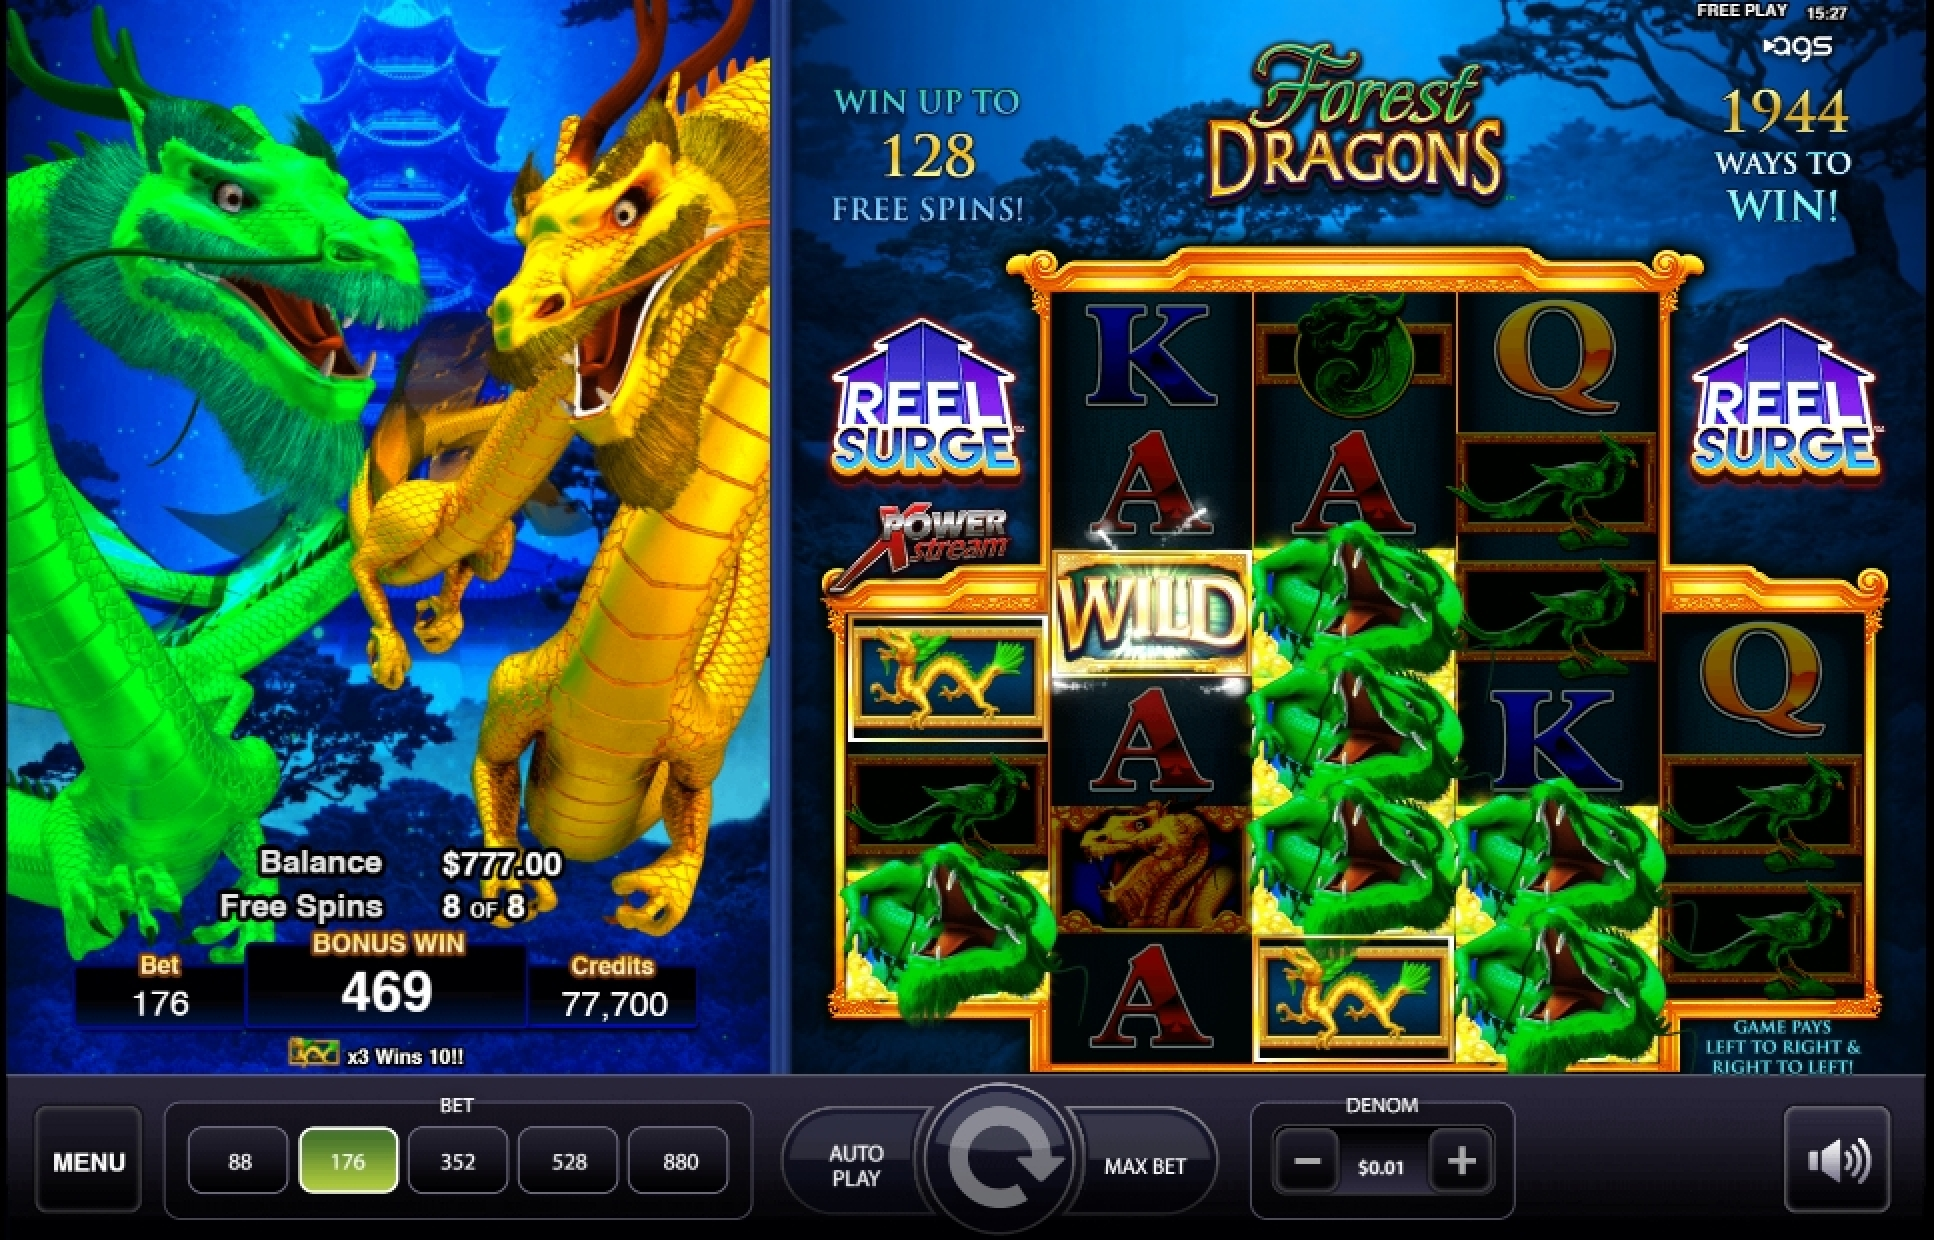 Win Money in Forest Dragons Free Slot Game by AGS